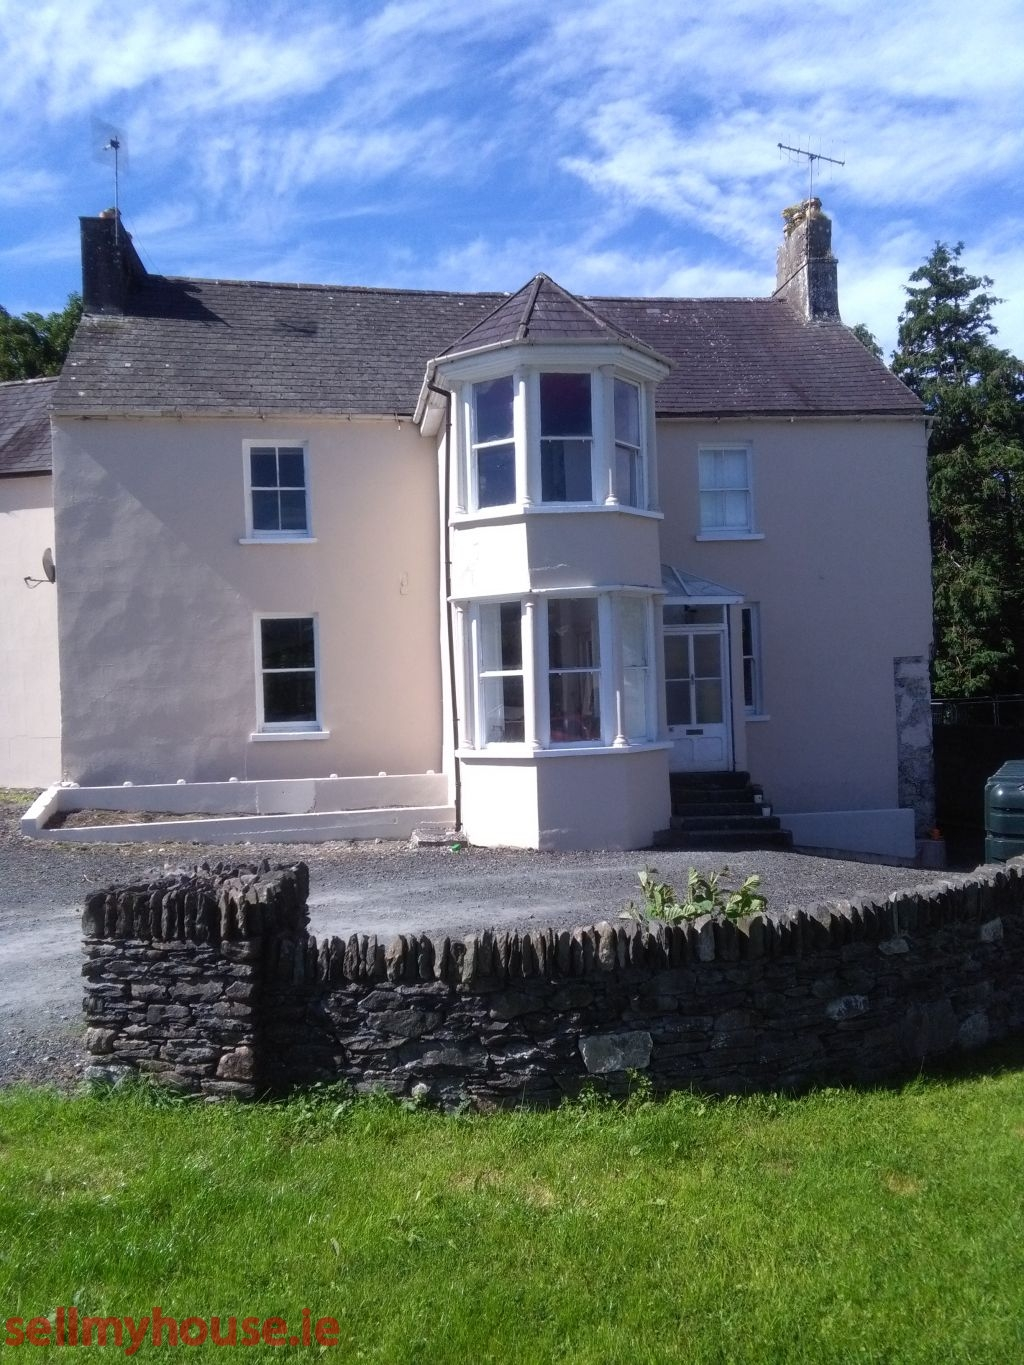 Houses For Sale In Dingle Ireland : houses, dingle, ireland, Dingle, Houses, Owner